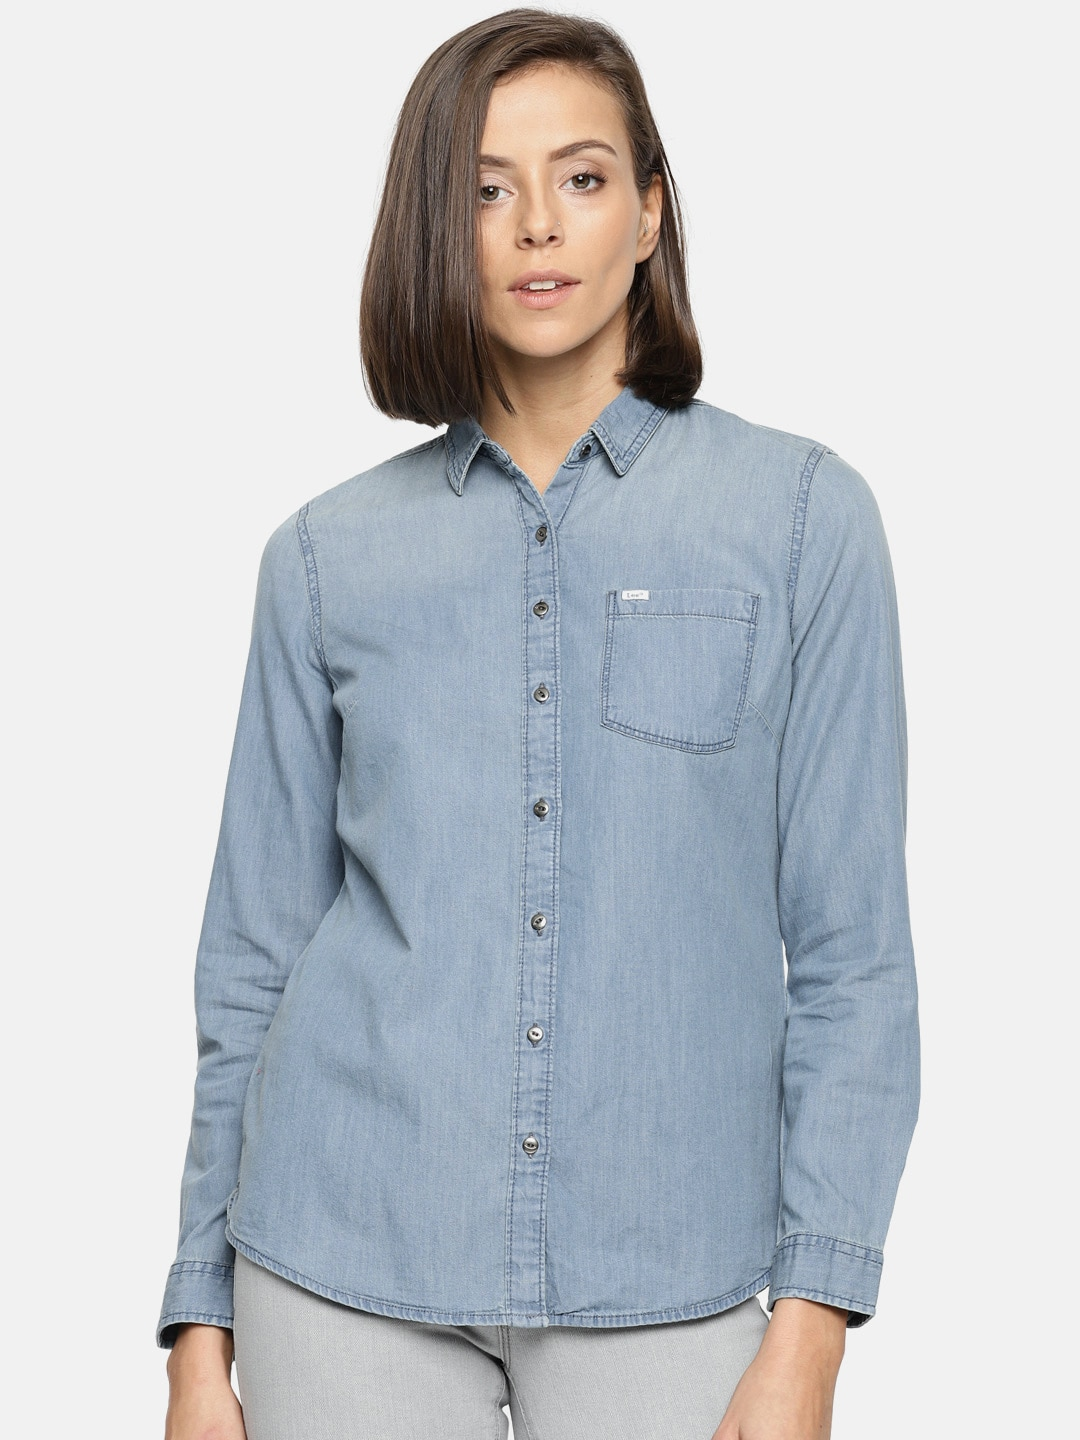 ae5da15367 Faded Denim Shirts - Buy Faded Denim Shirts online in India